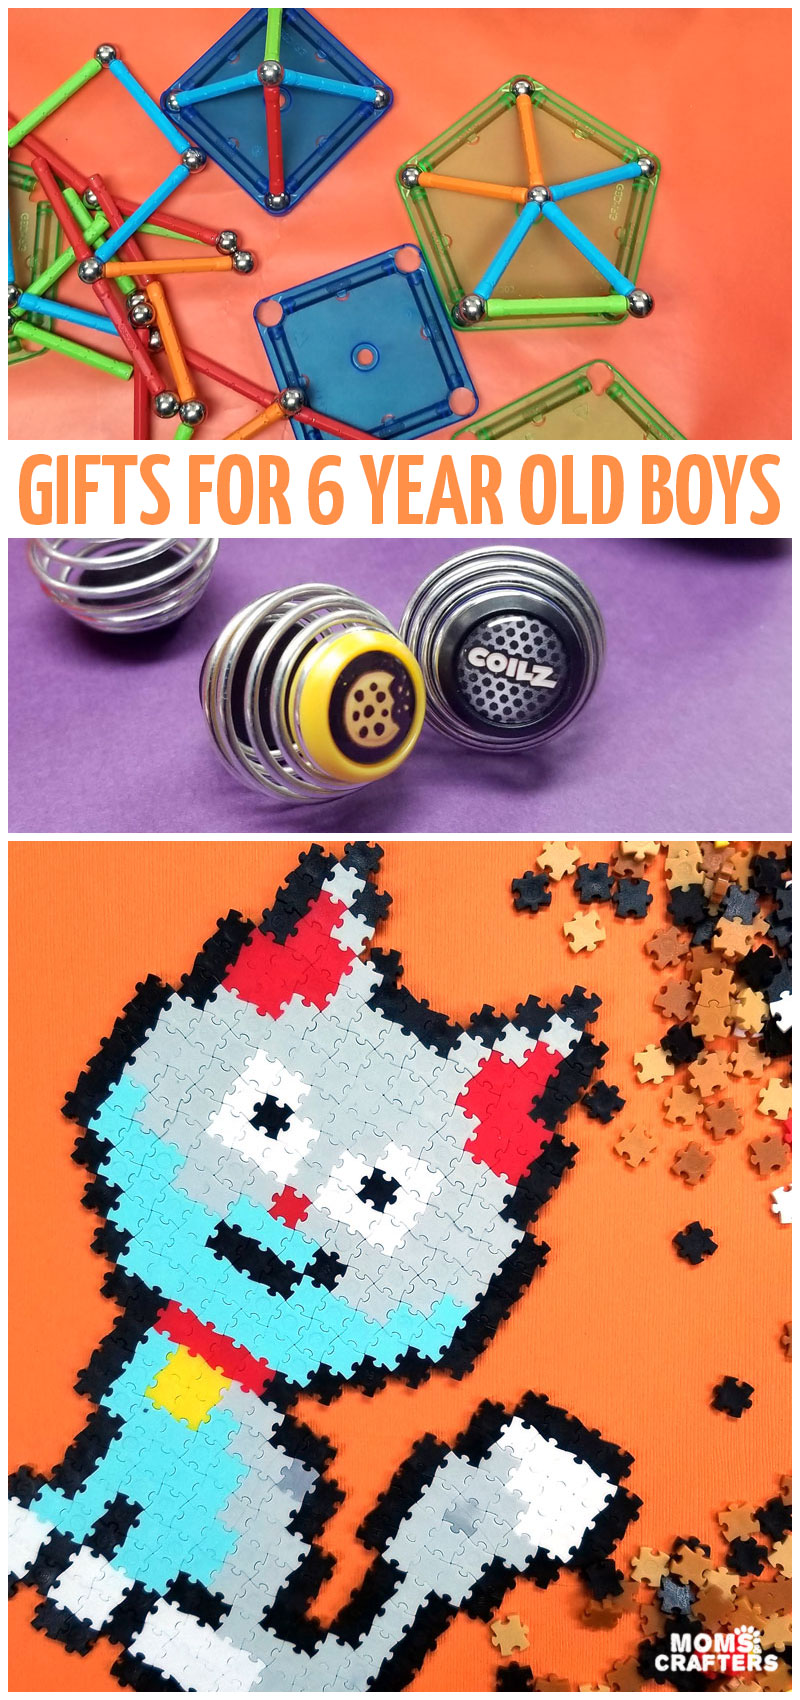 Click to find the best gifst for 6 year old boys for every budget! You'll find affordable gift ideas, STEAM gifts and the best toys of 2019. All of these are educational gifts for boys and girls that are six for Christmas, Hanukkah, and birthdays.